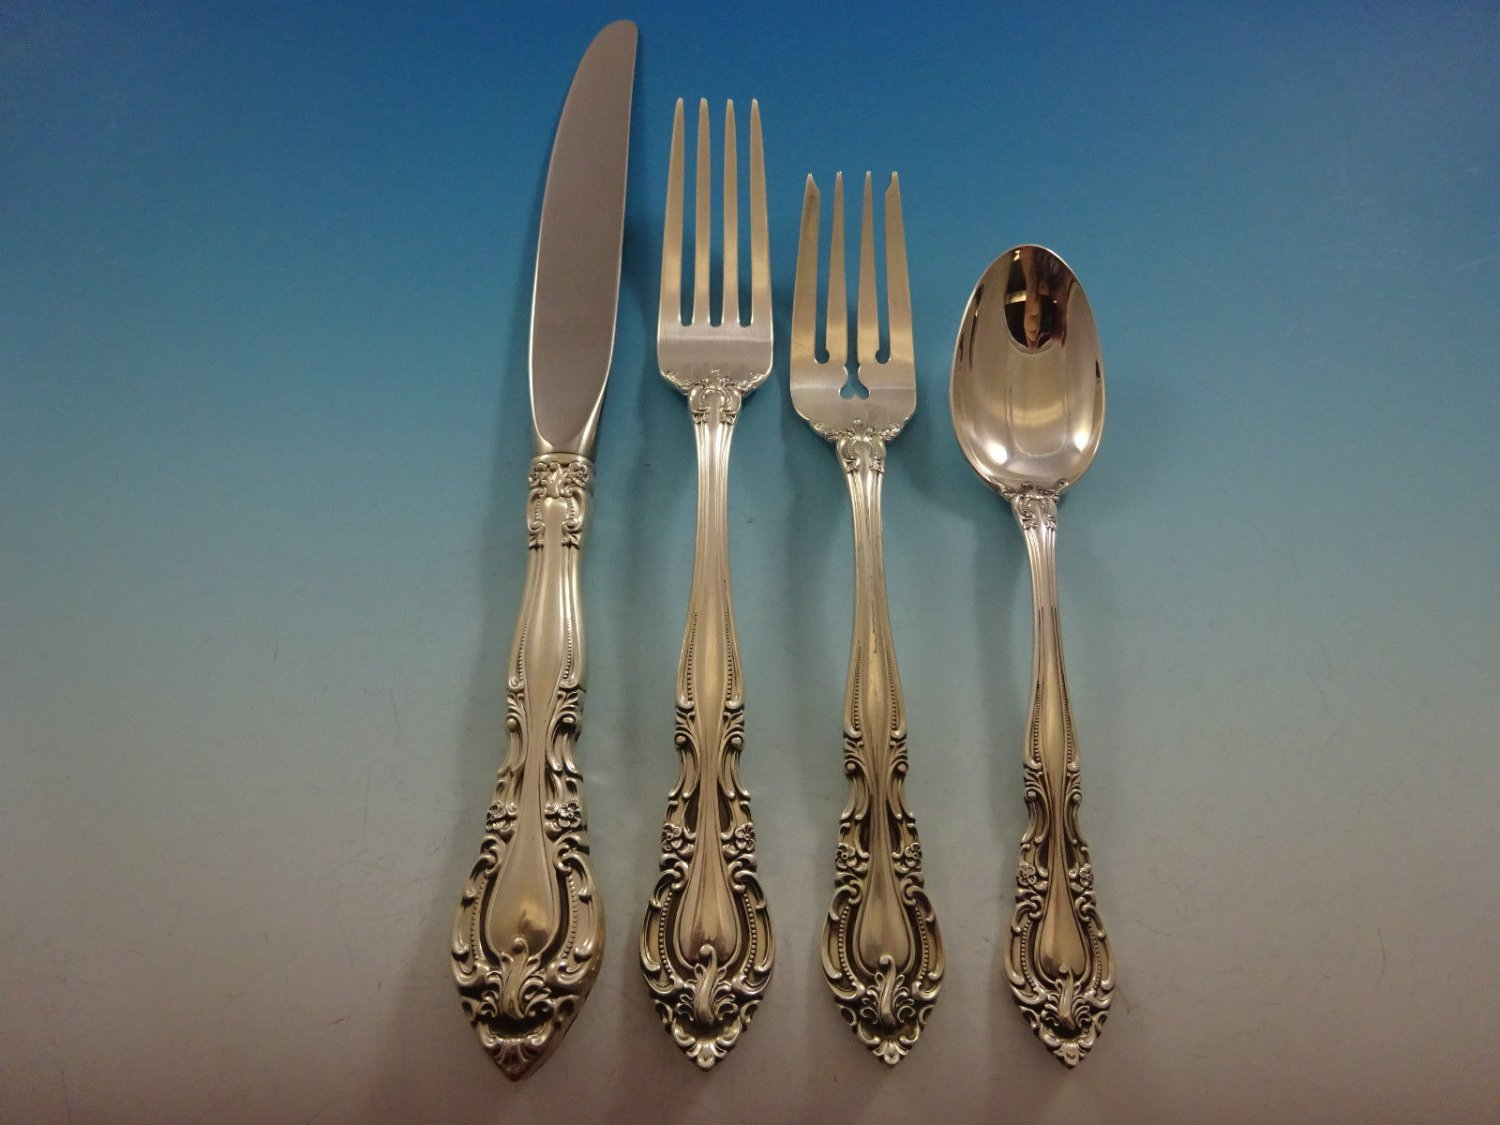 Vivaldi by Alvin Sterling Silver Flatware Set For 12 Service 48 Pieces